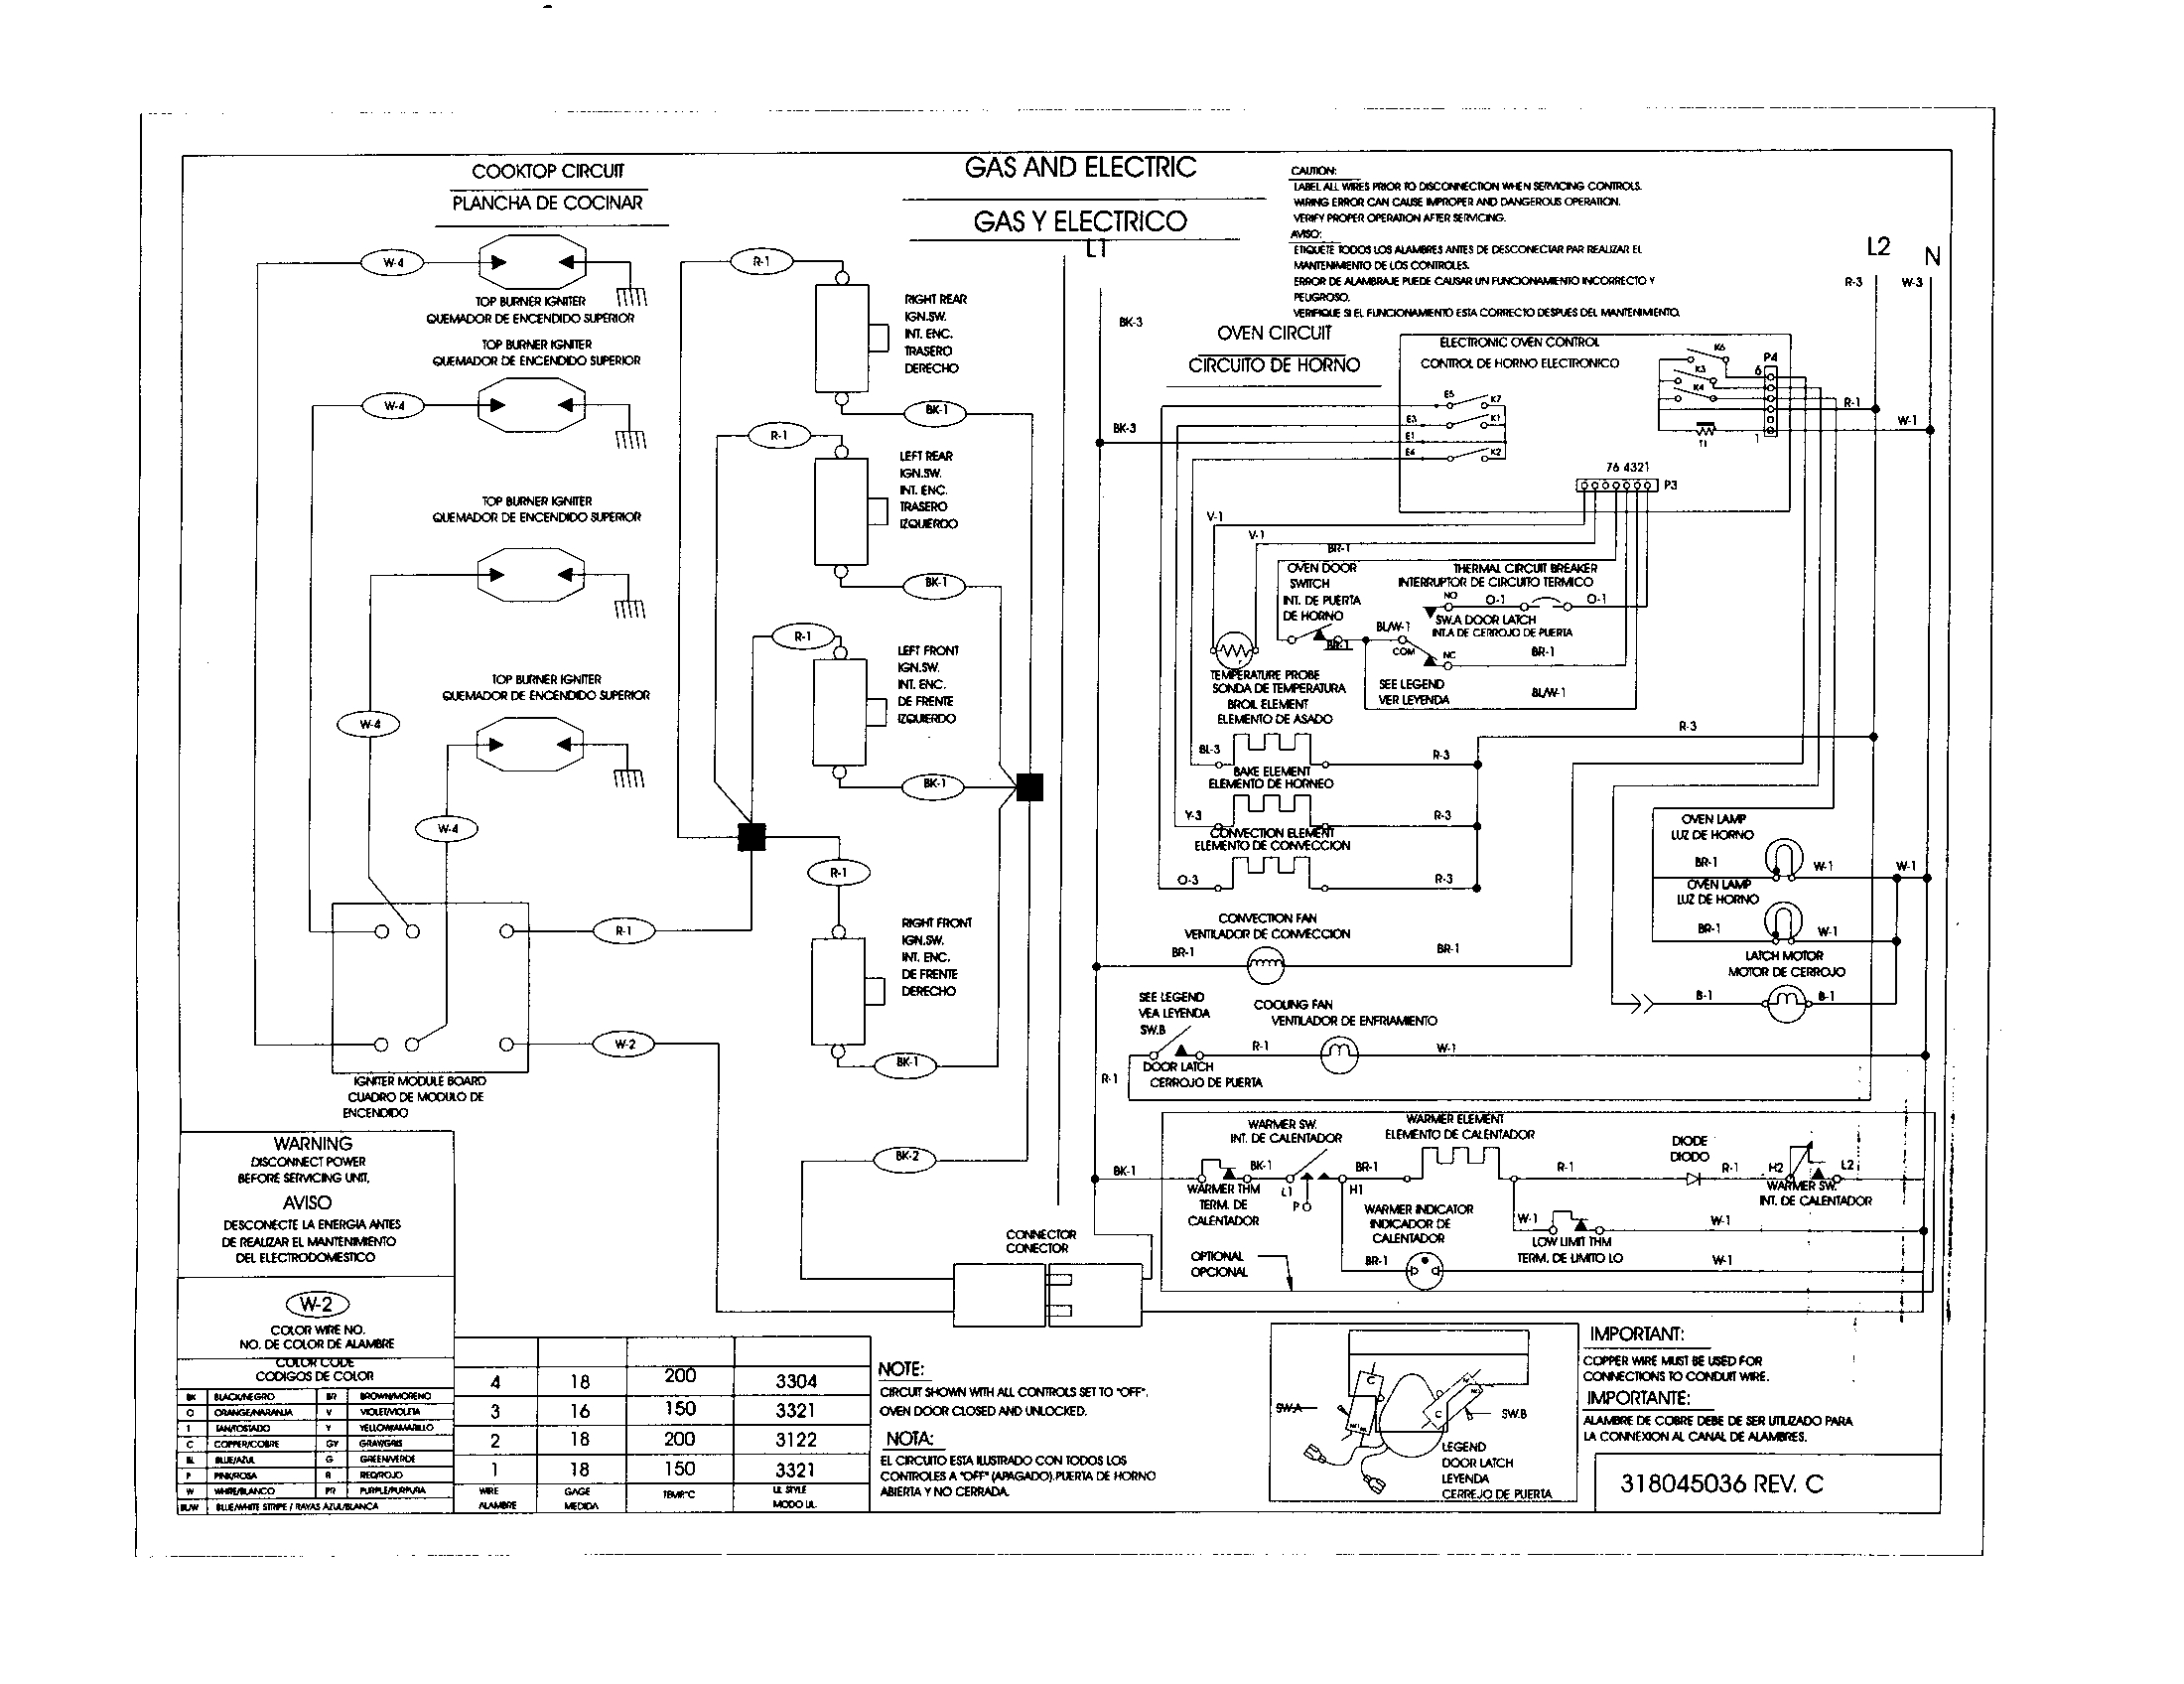 kenmore side by side refrigerator wiring diagram Download-Kenmore Elite Refrigerator Parts Diagram Beautiful Kenmore Elite Refrigerator Wiring Diagram Webtor 11-m